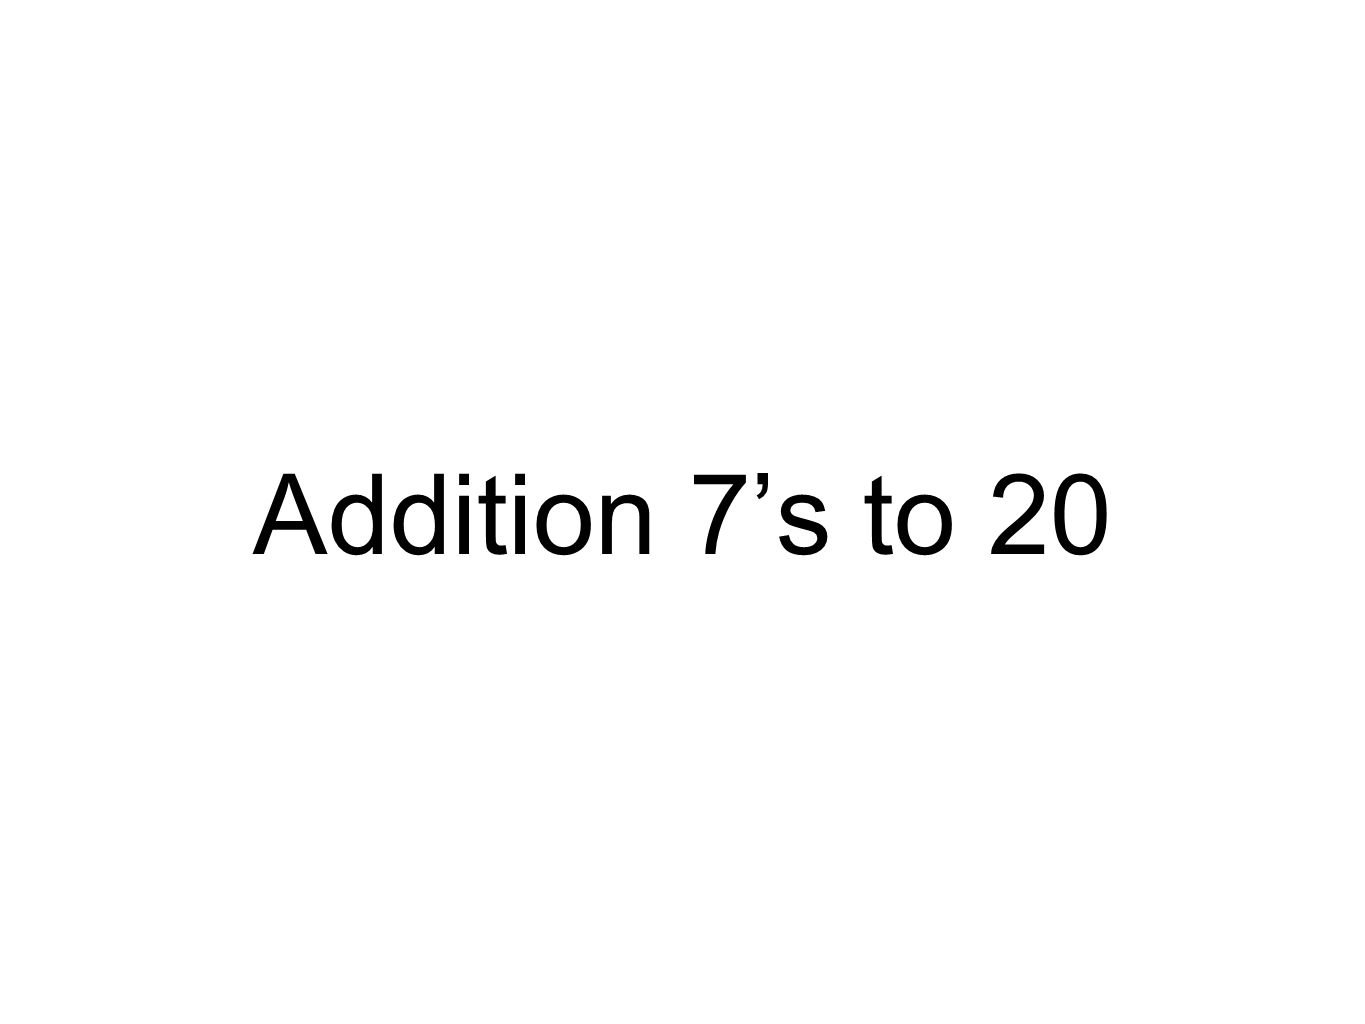 Addition 7's to 20